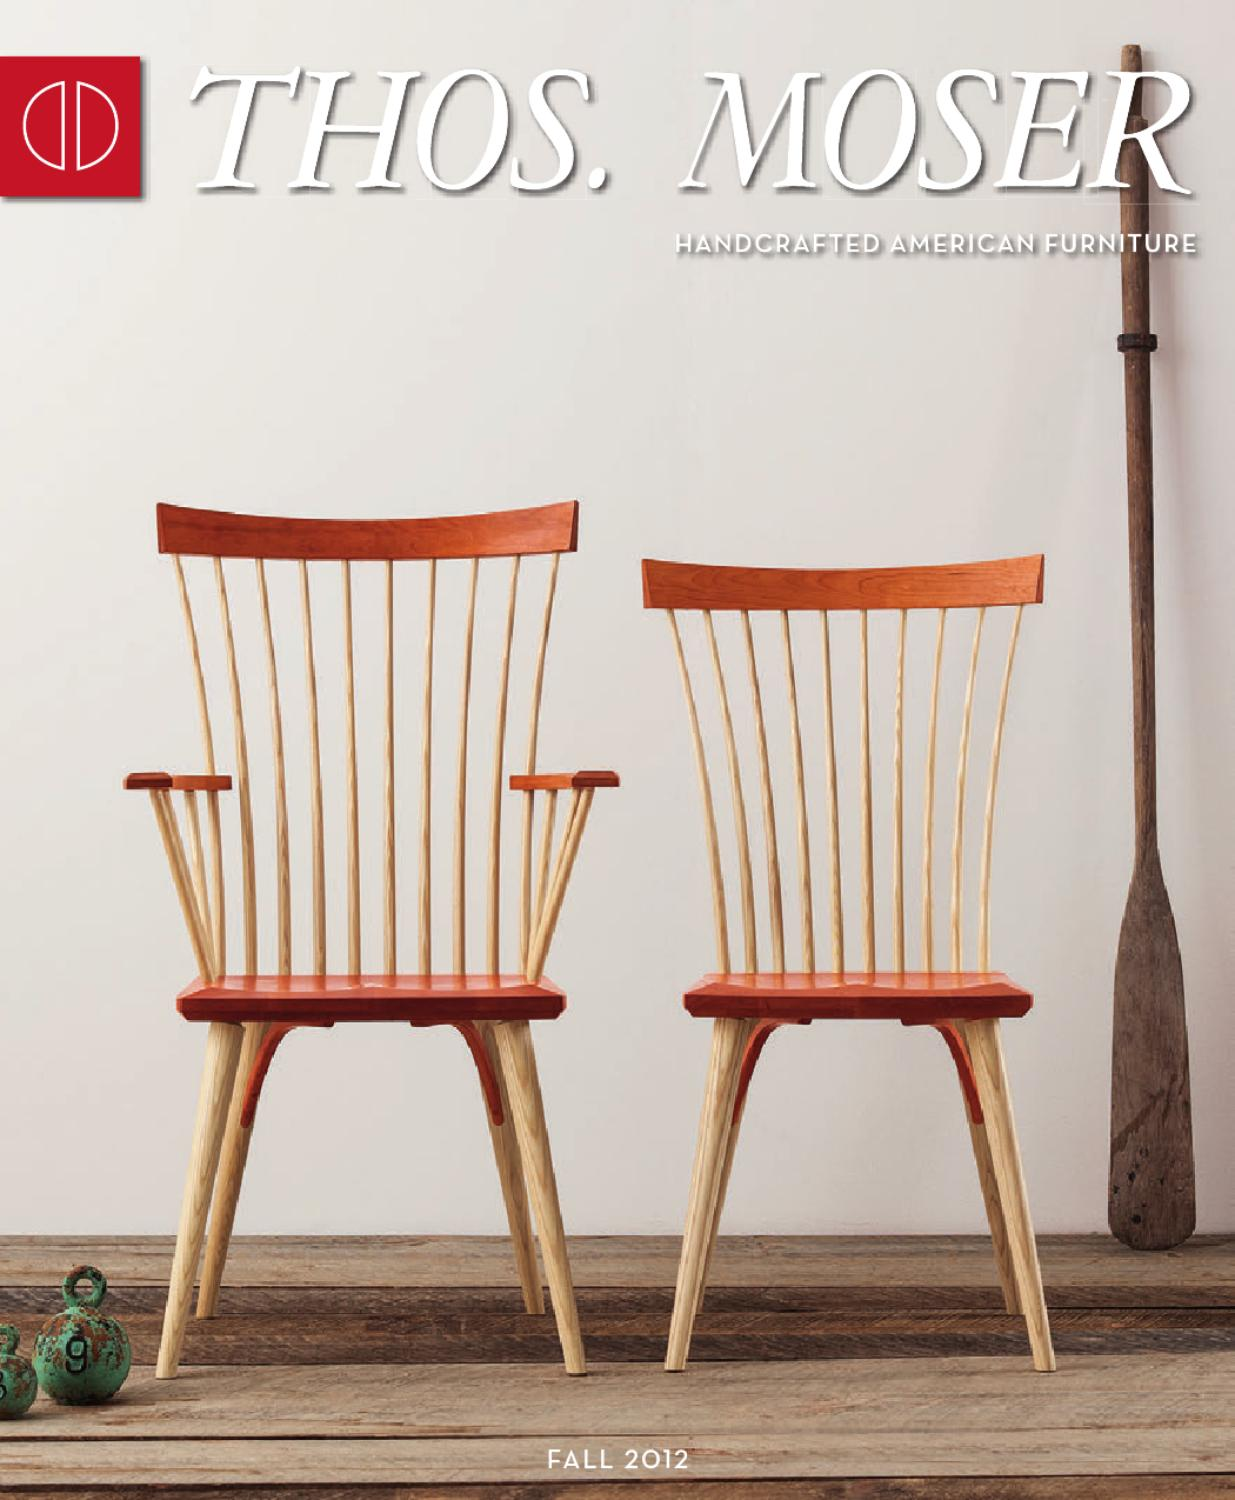 Thos. Moser Fall 2012 Catalog By Thos. Moser Handmade